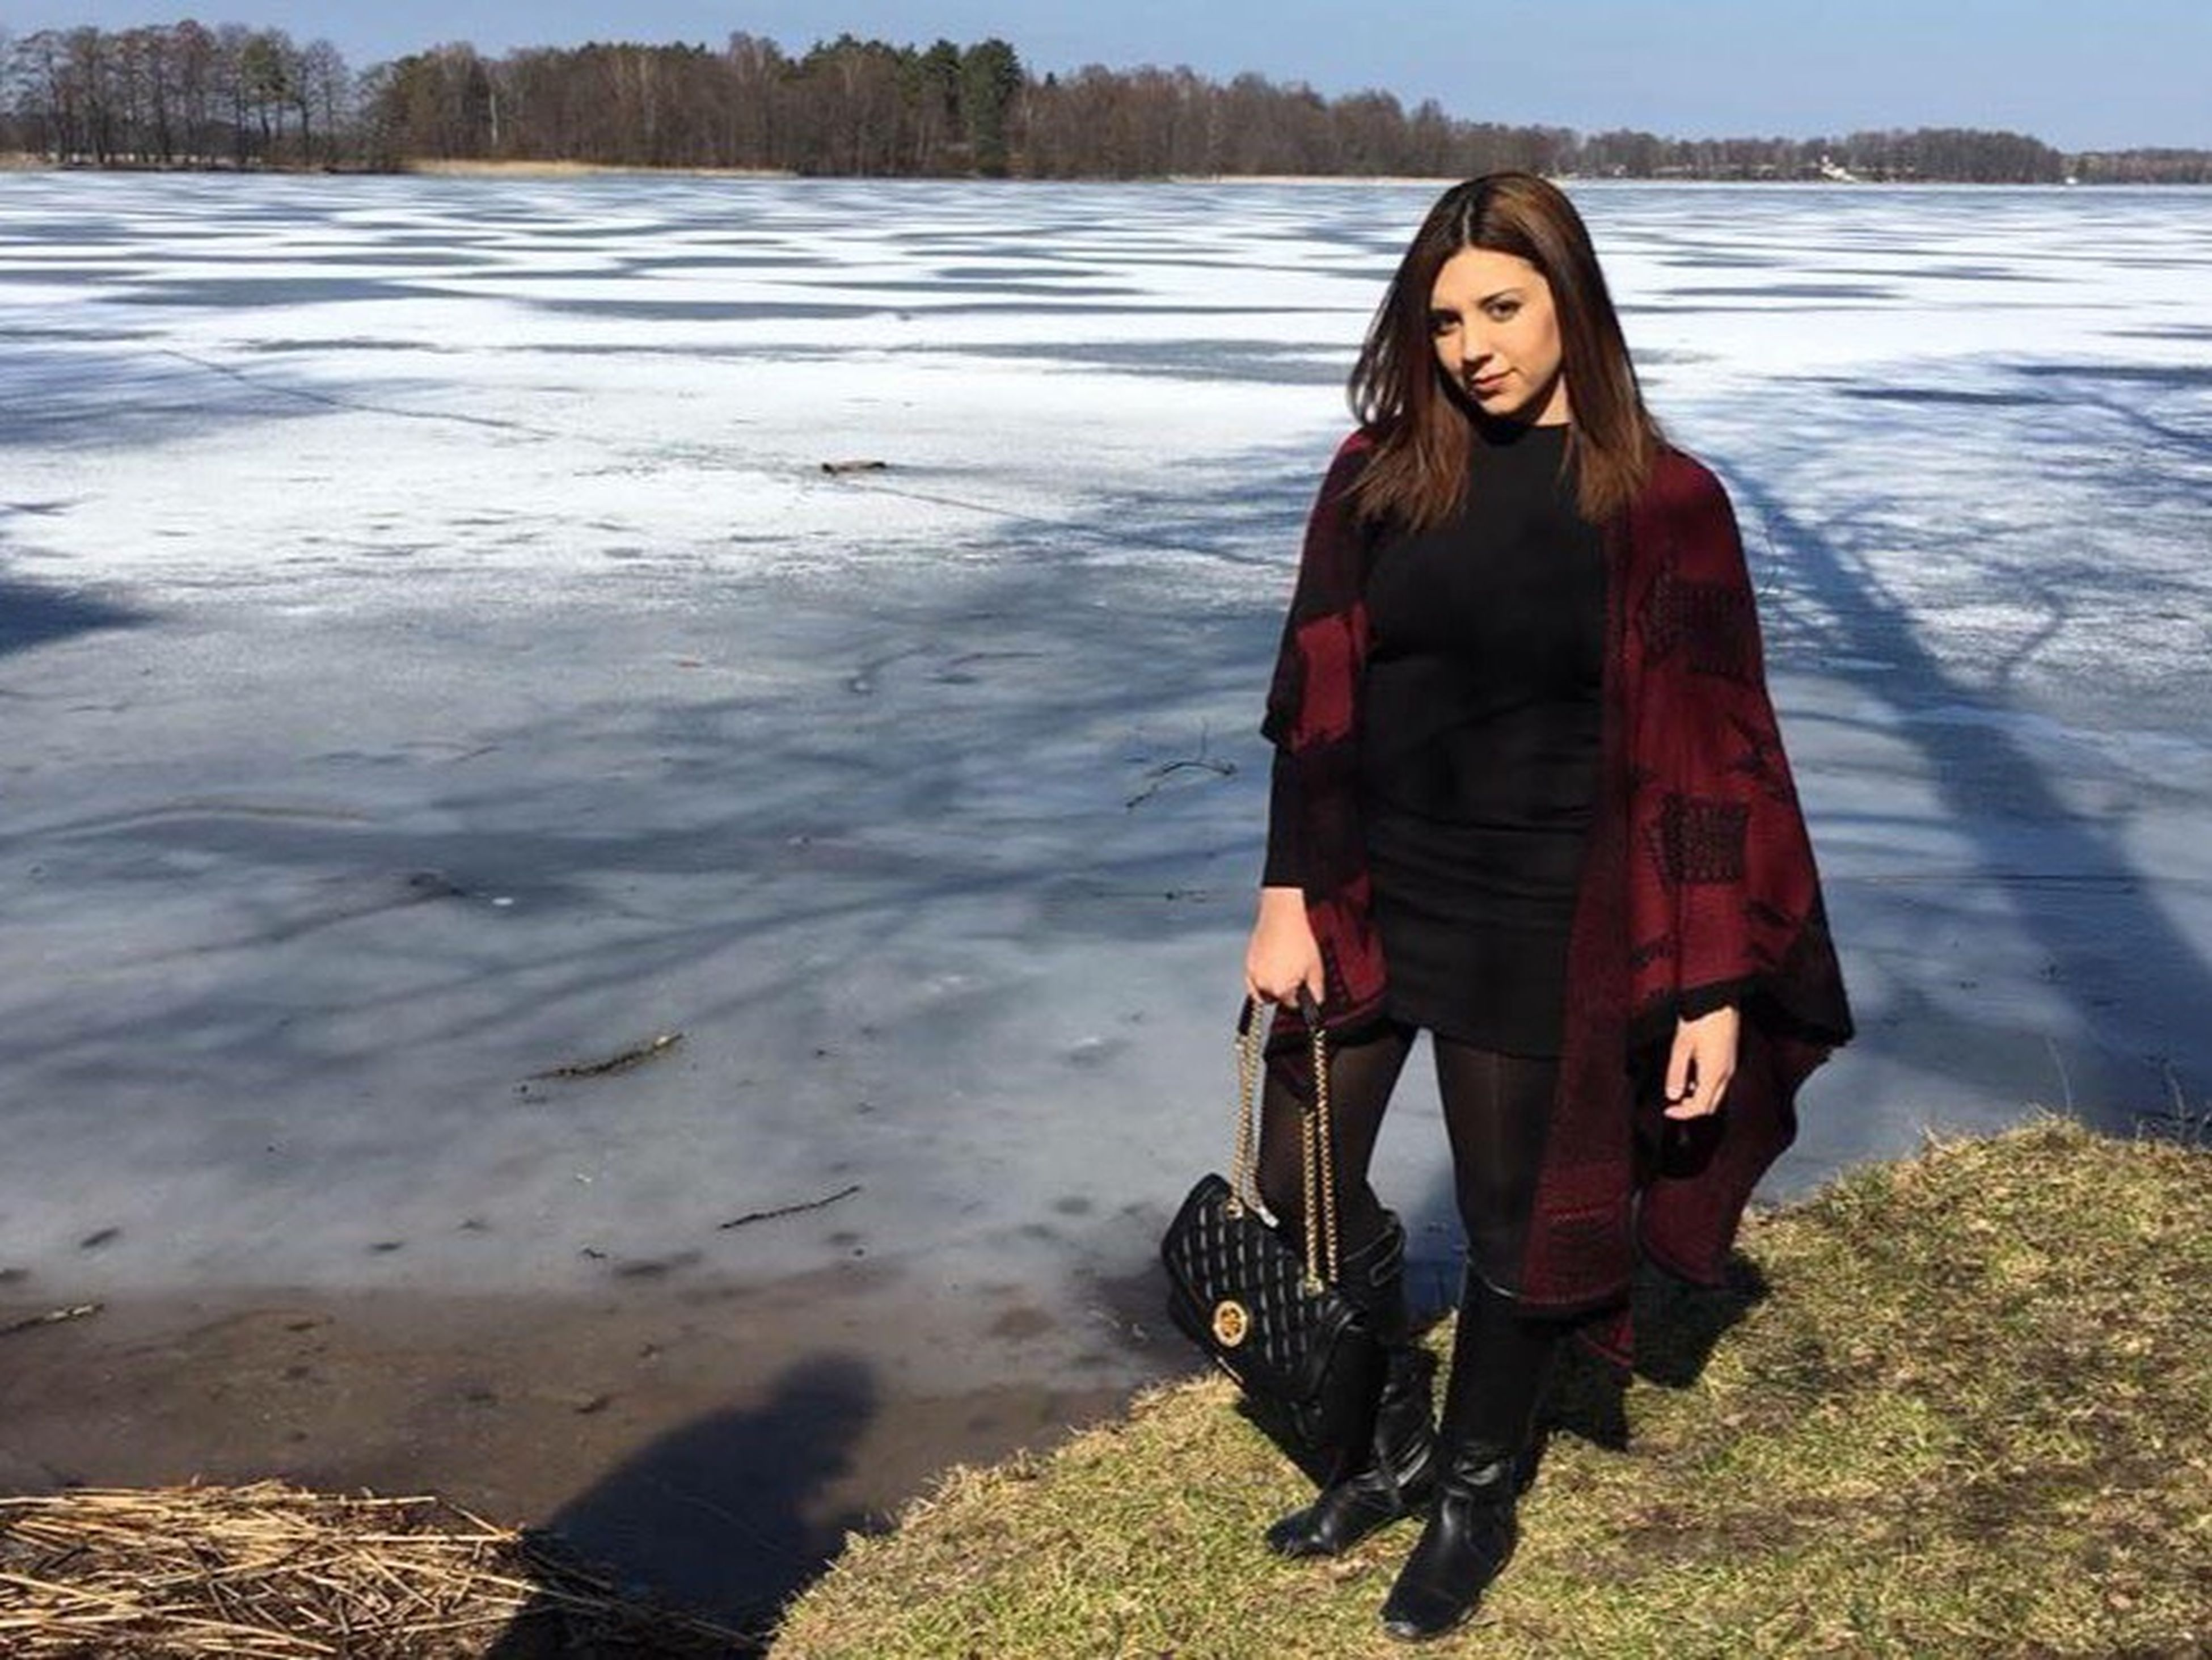 lifestyles, water, leisure activity, casual clothing, person, young adult, standing, full length, front view, looking at camera, portrait, three quarter length, lake, vacations, warm clothing, young women, outdoors